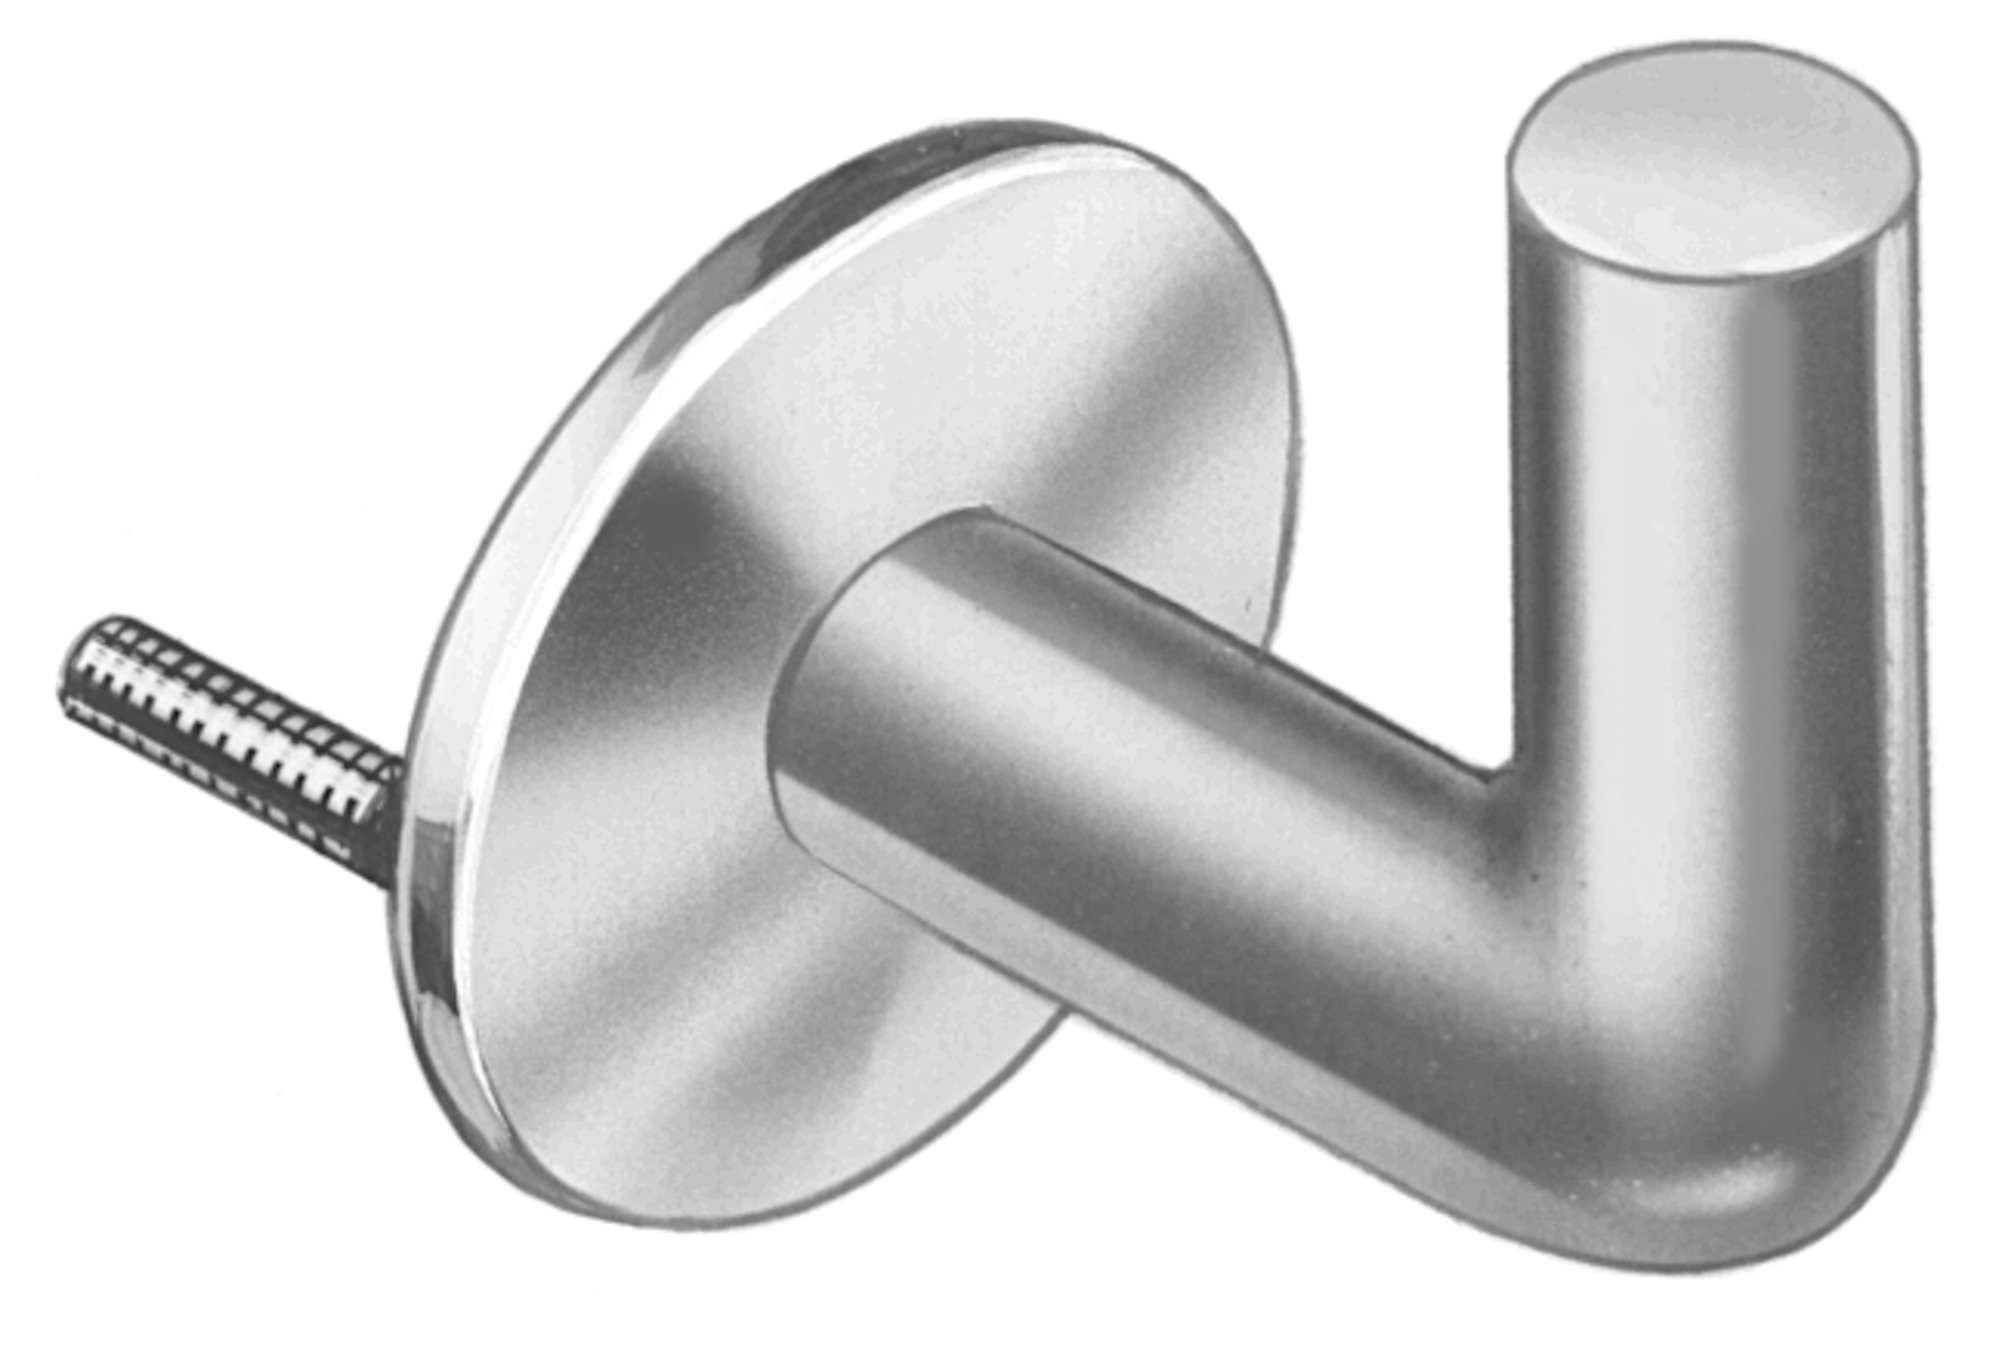 Toilet Paper Holder Hook SA09 | Accurate Door & Hardware, Inc.